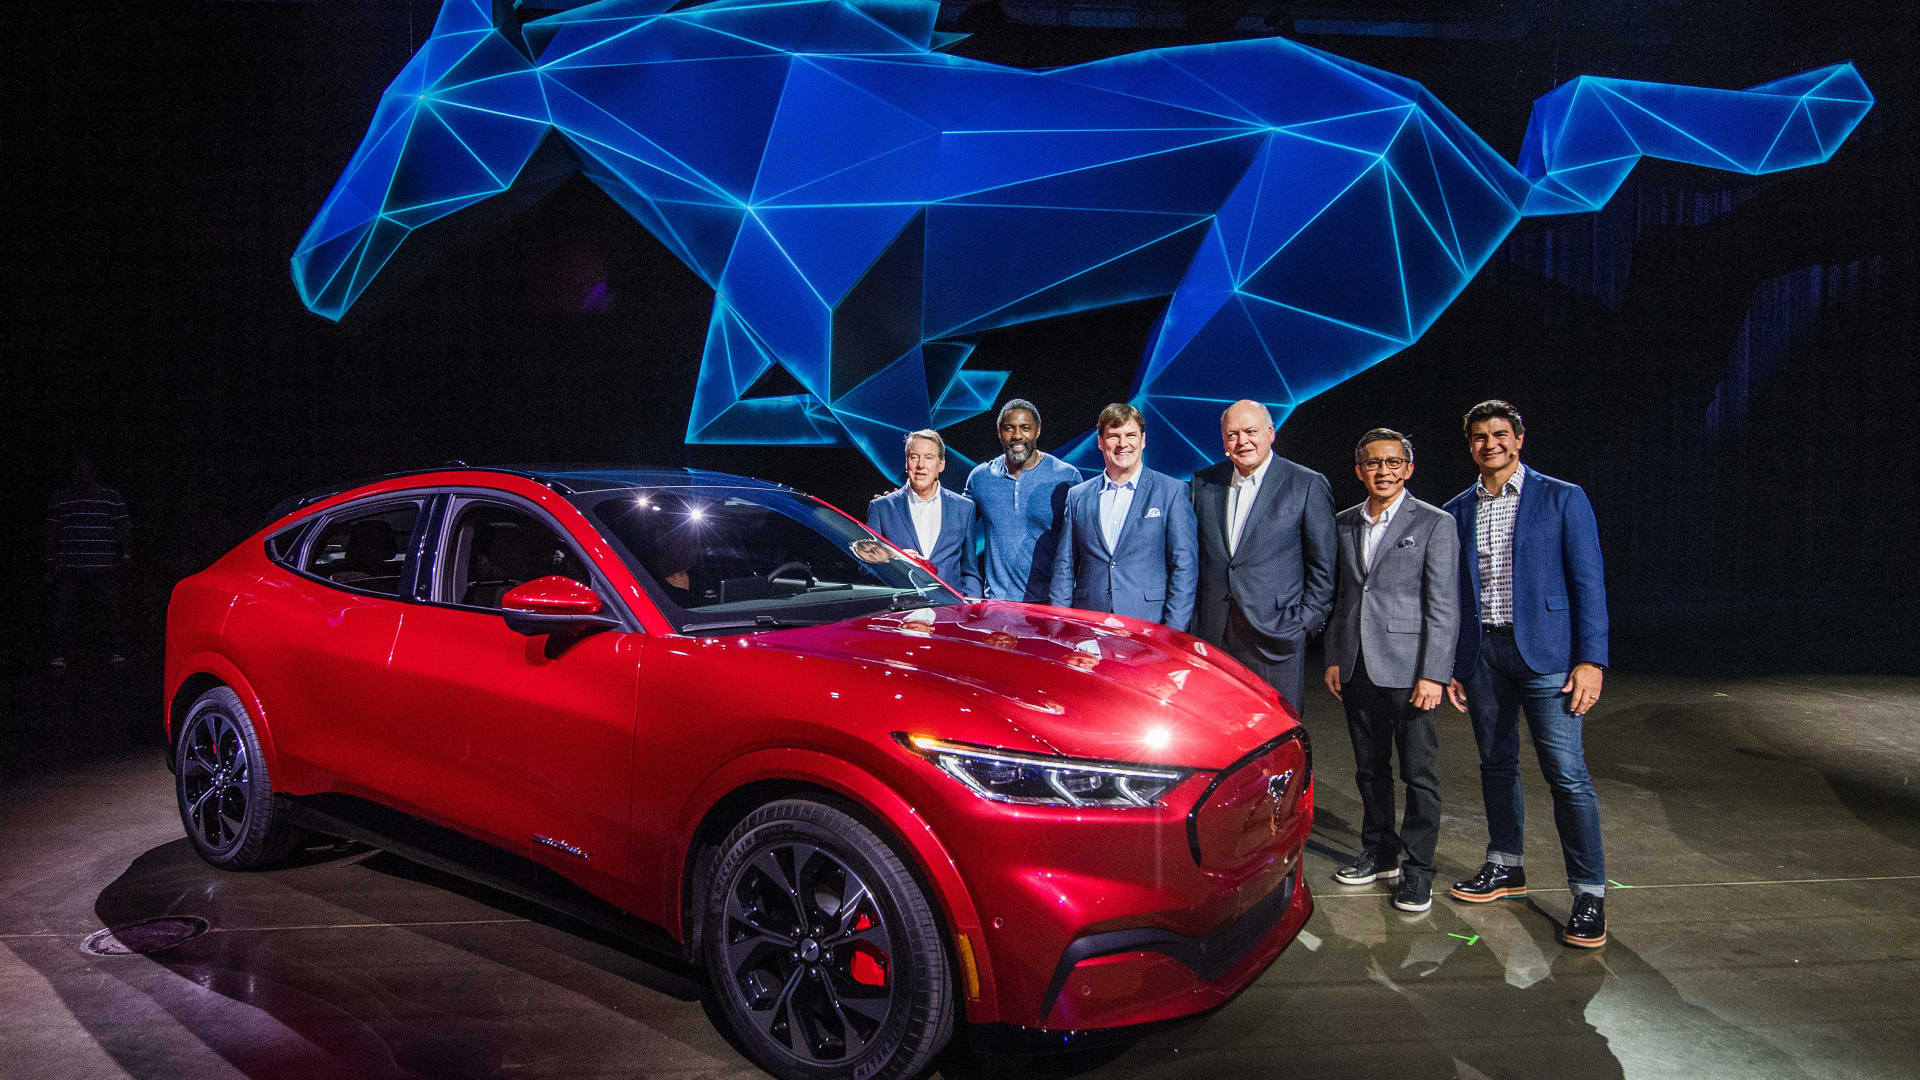 Then-Ford CEO James Hackett (3rd R) and team members, including his successor, Jim Farley (3rd L), reveal the company's first mass-market electric car the Mustang Mach-E, which is an all-electric vehicle that bears the name of the company's iconic muscle car at a ceremony in Hawthorne, California on November 17, 2019.